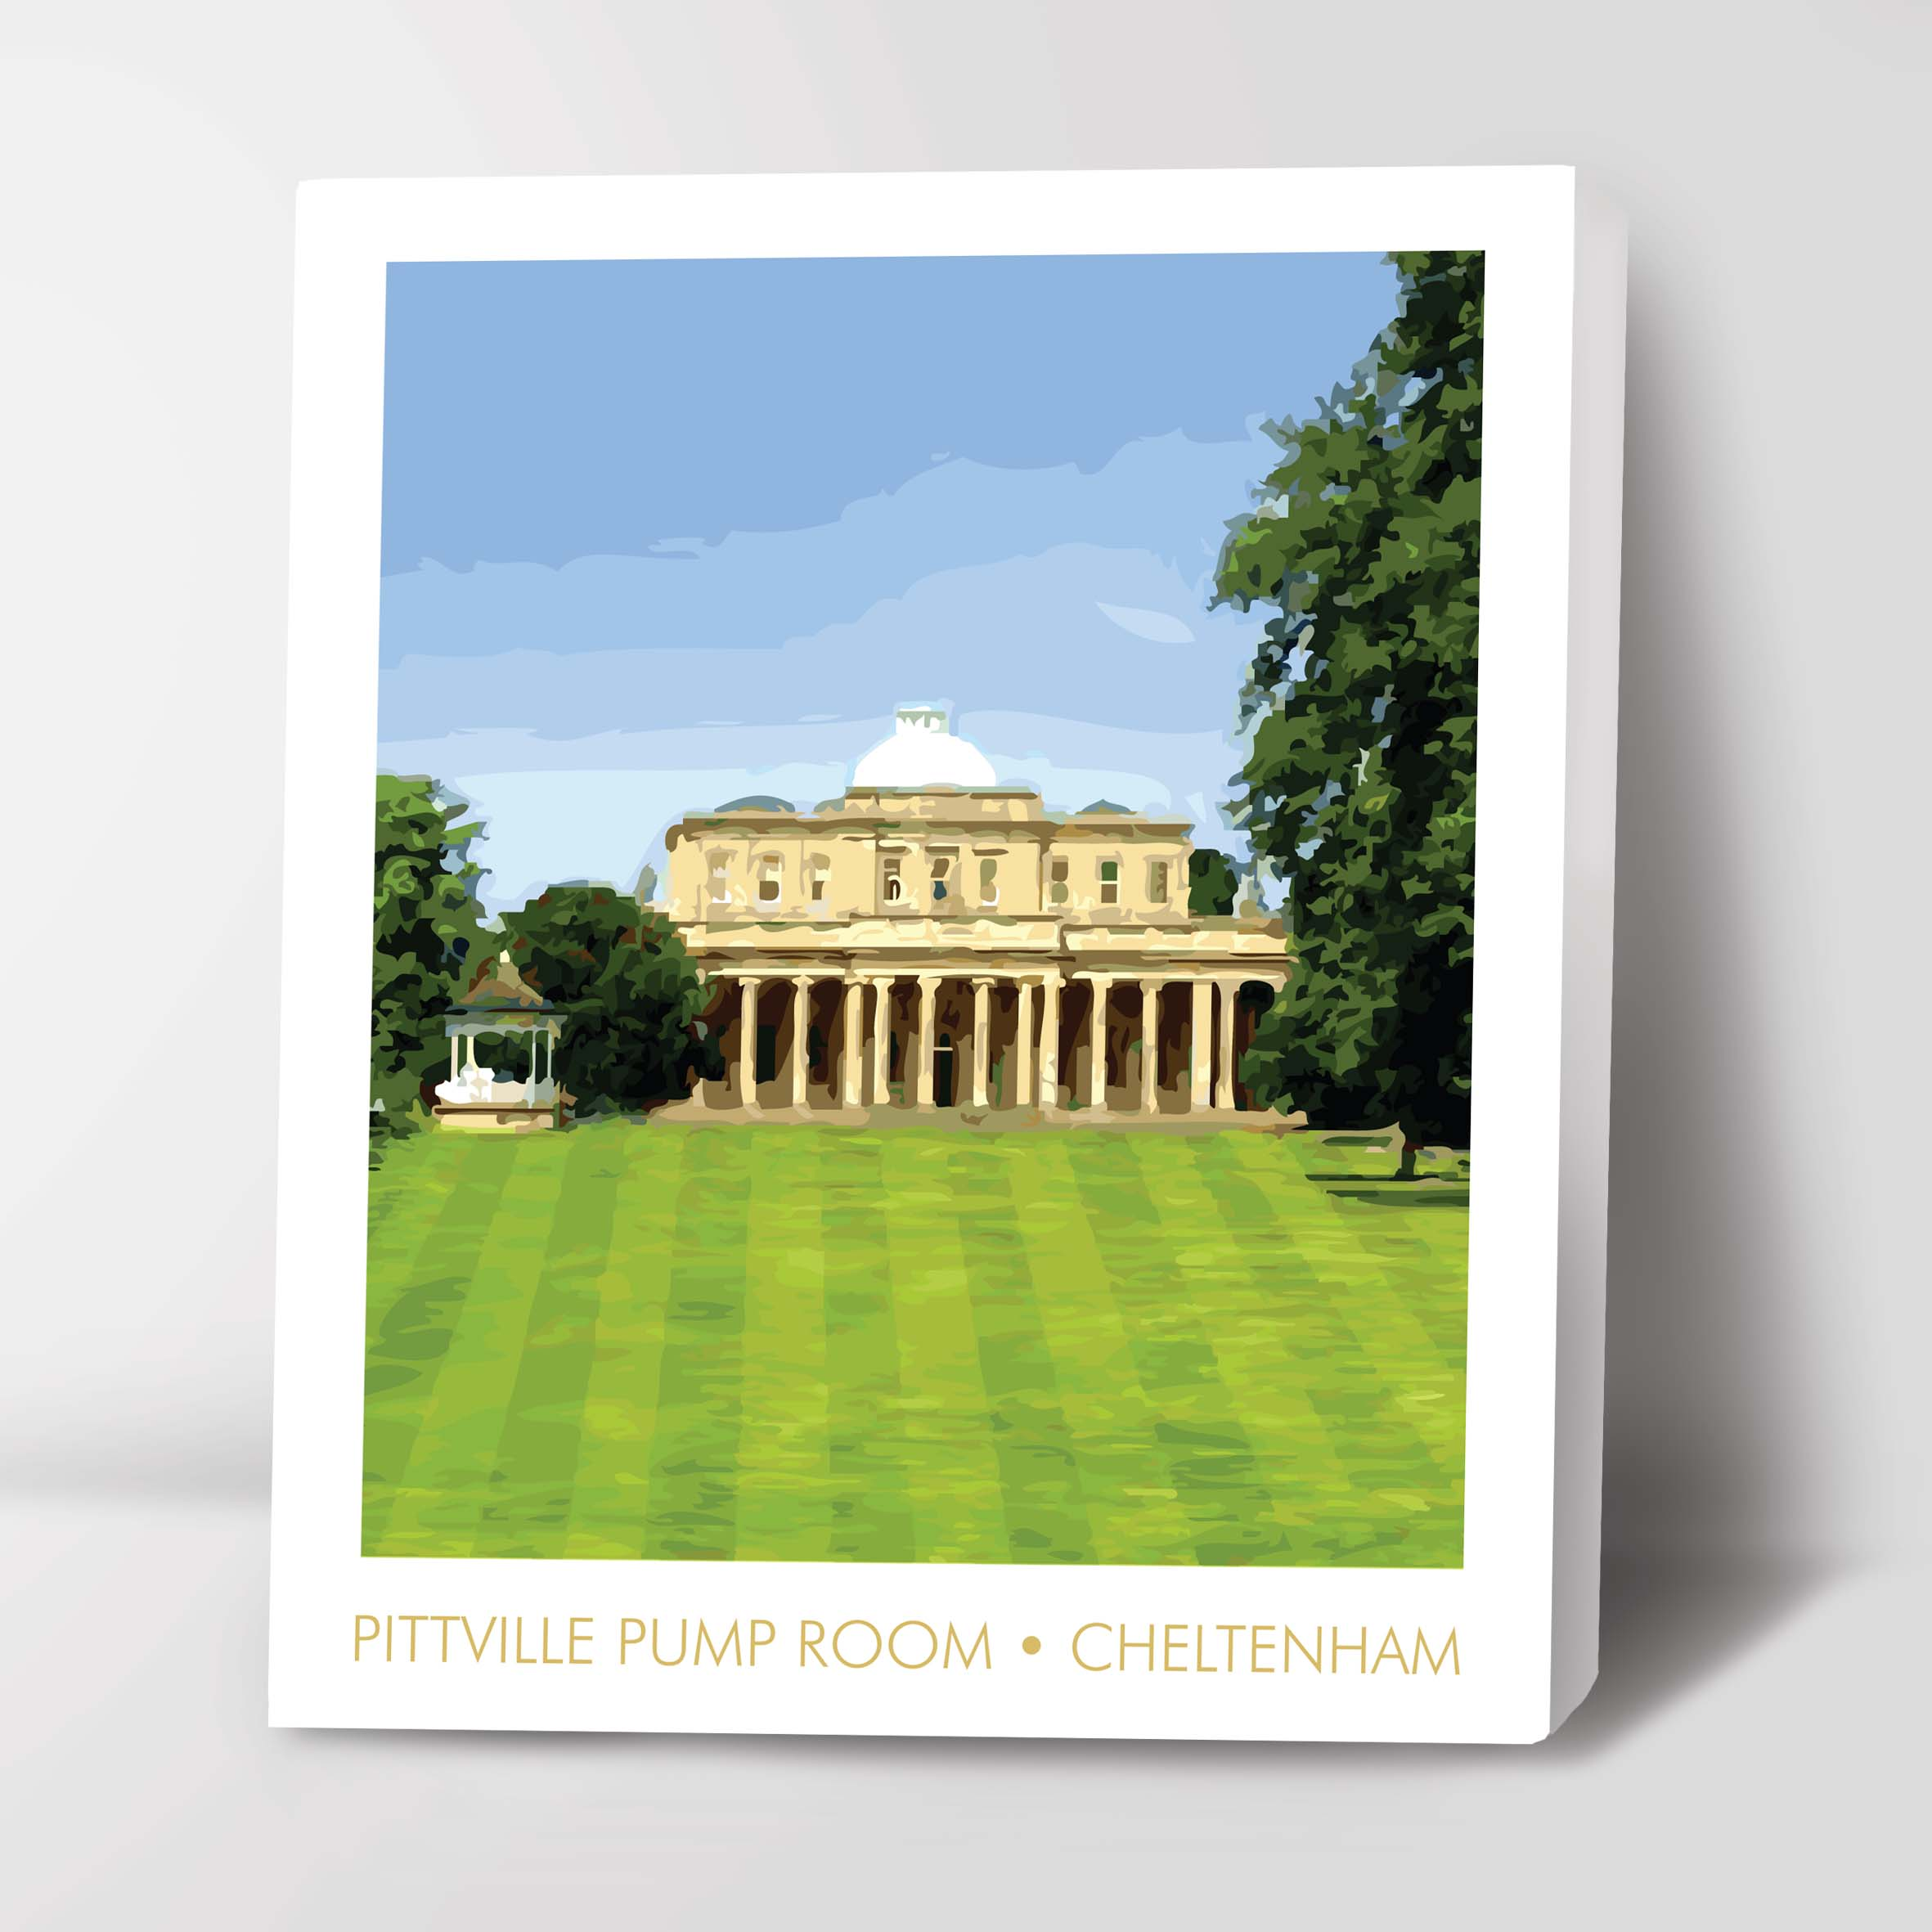 Canvas Image of Pittville Pump Rooms